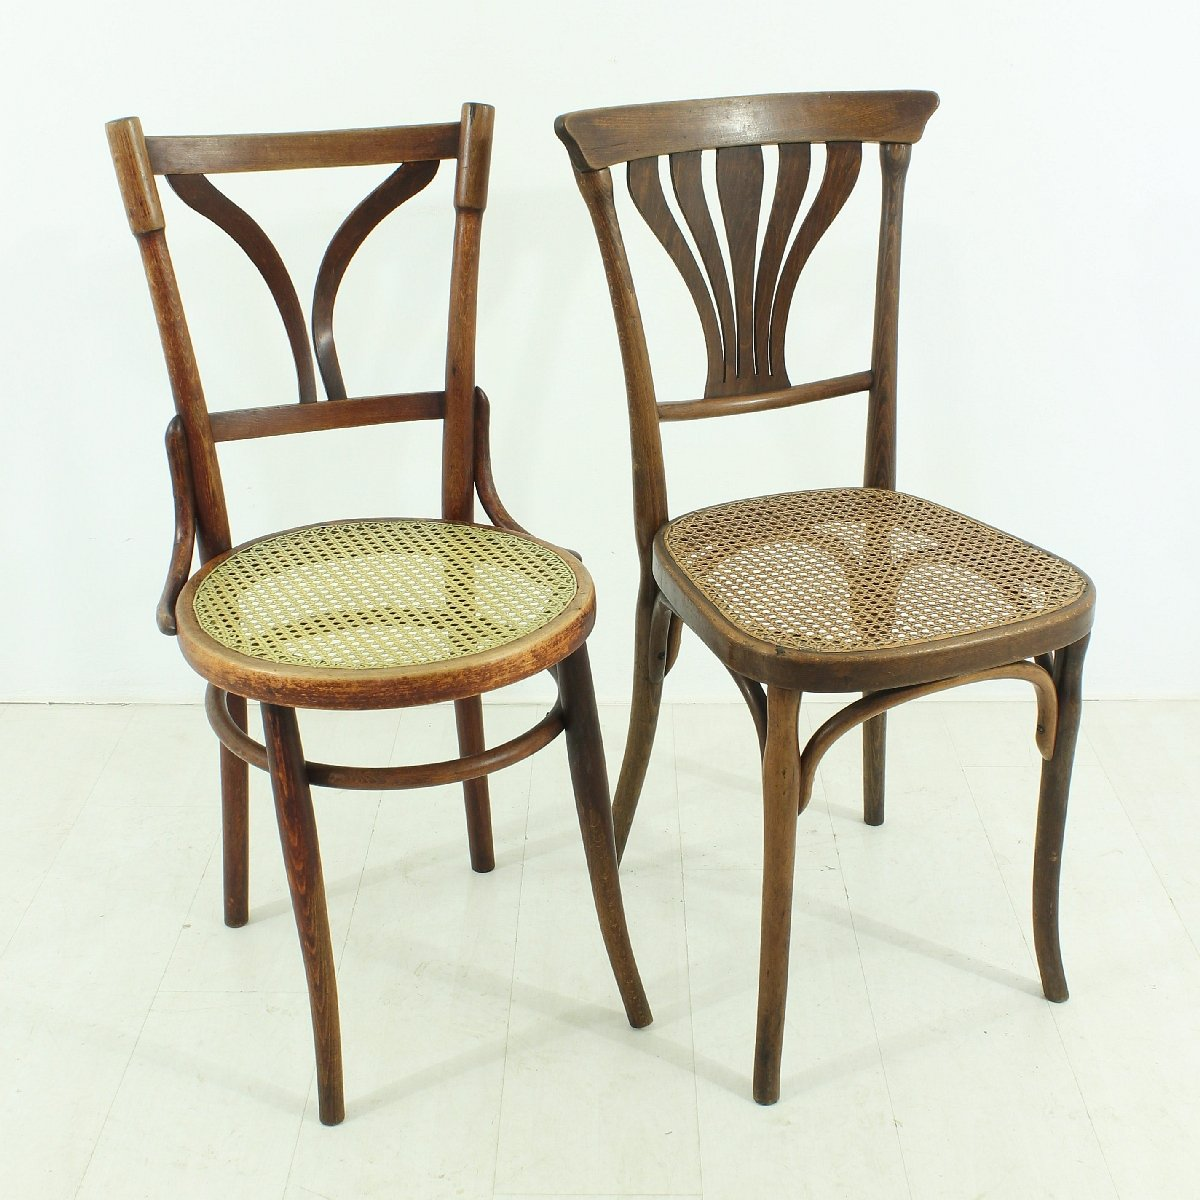 plastic bentwood bistro chairs bedroom chair malaysia antique chairs, set of 2 for sale at pamono